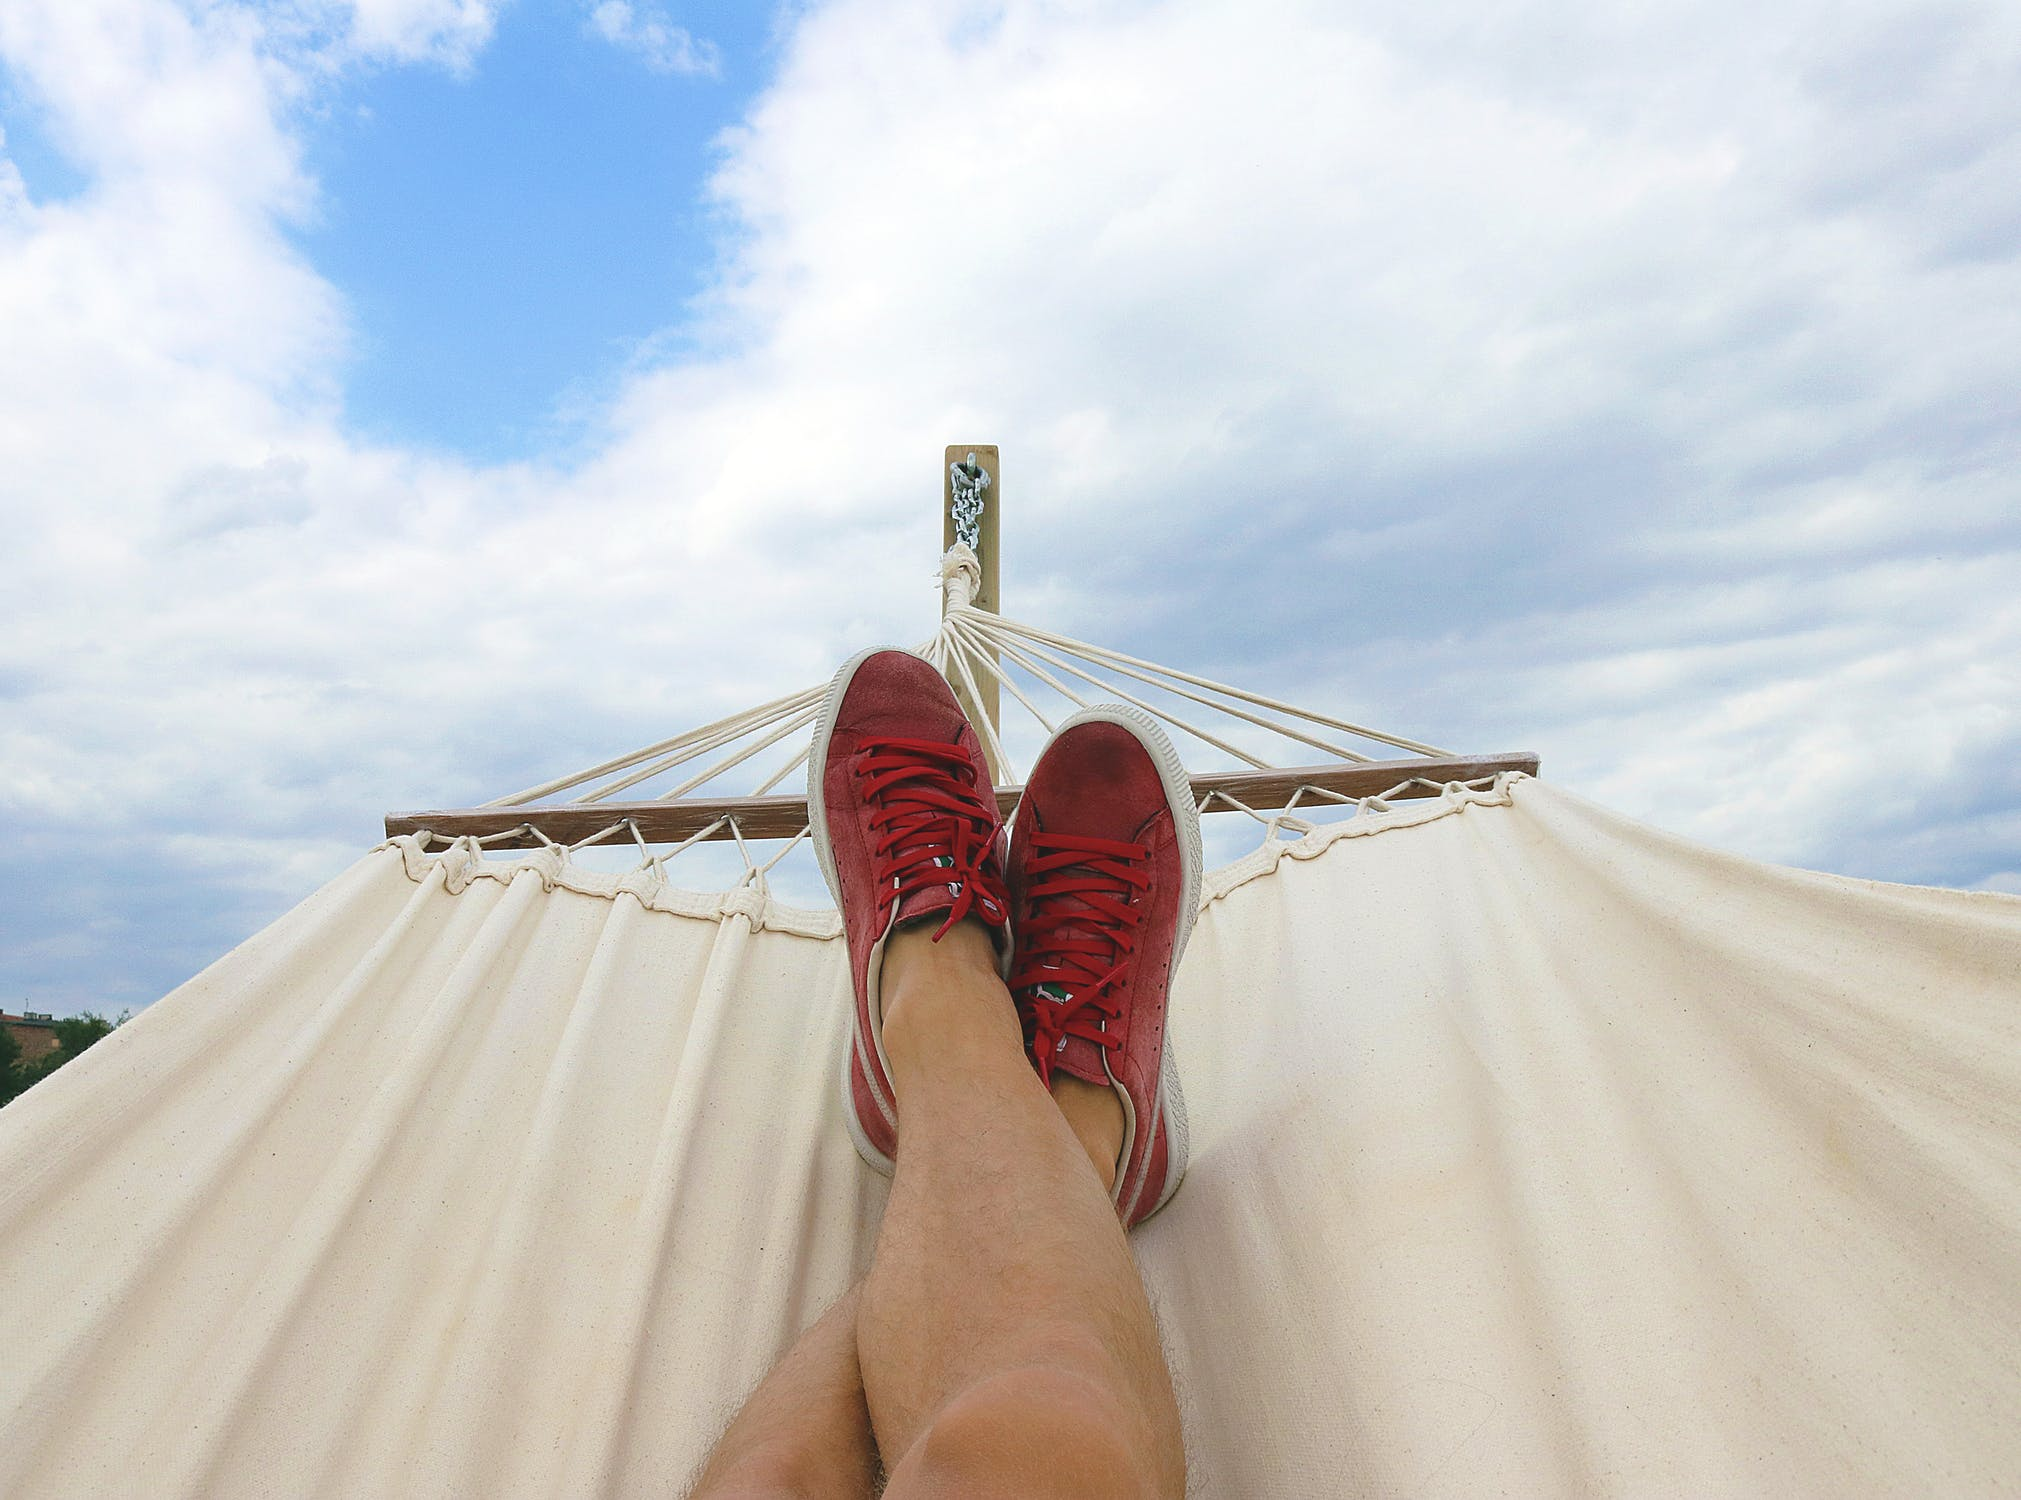 A point of view photo of someone lying in a hammock looking down at their red sneakers.